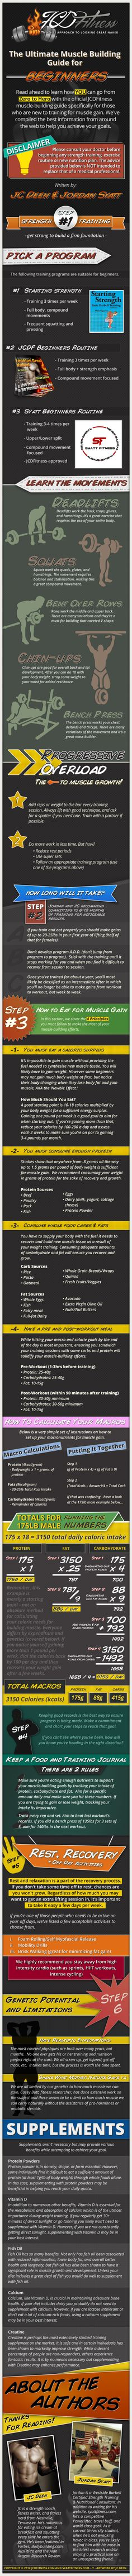 The Ultimate Muscle Building Guide For Beginners (Infographic)